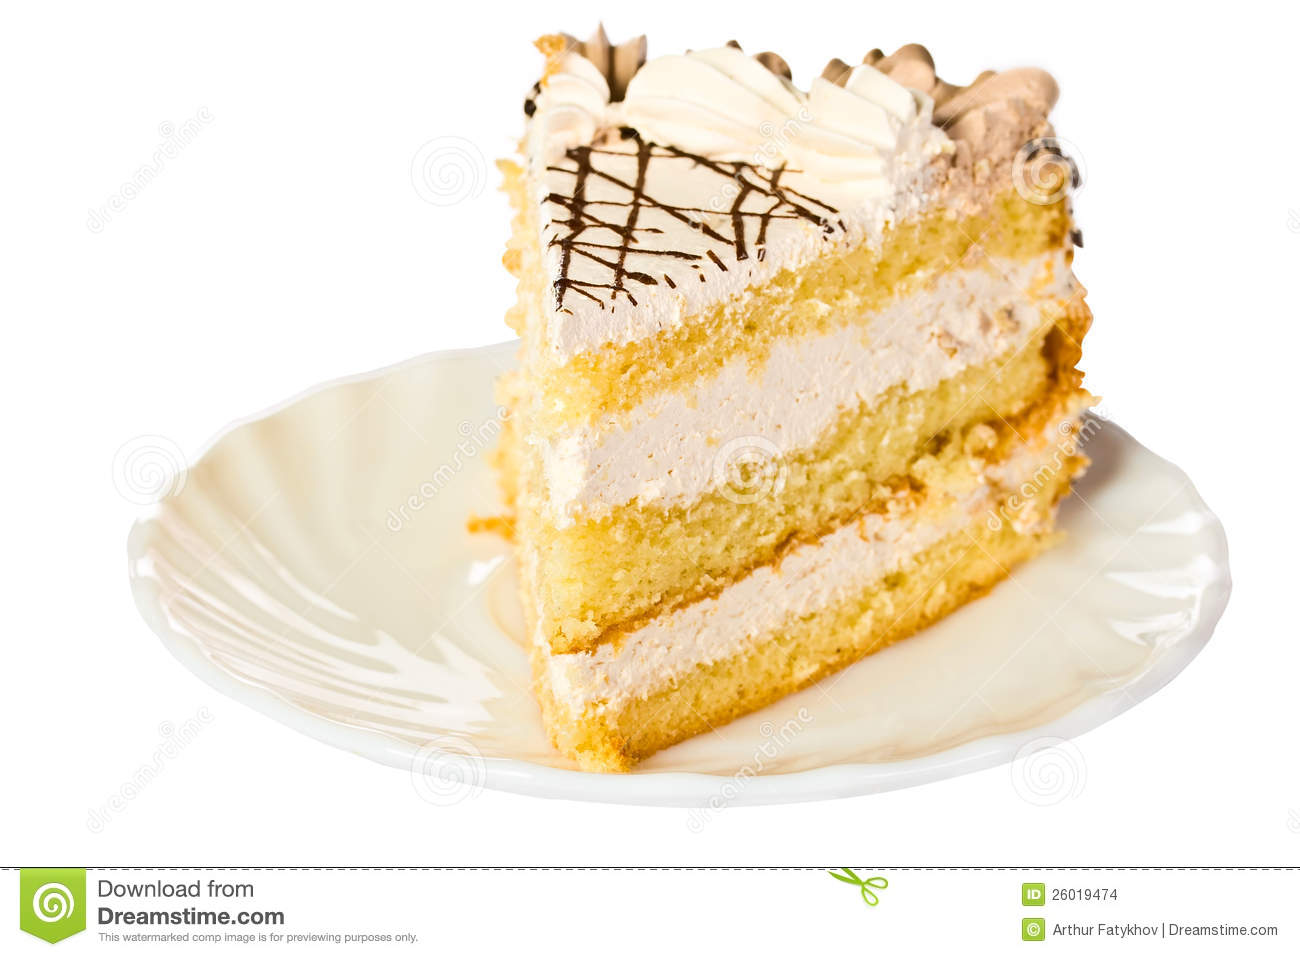 Cake Images Piece : Piece Of Birthday Cake Stock Images - Image: 26019474